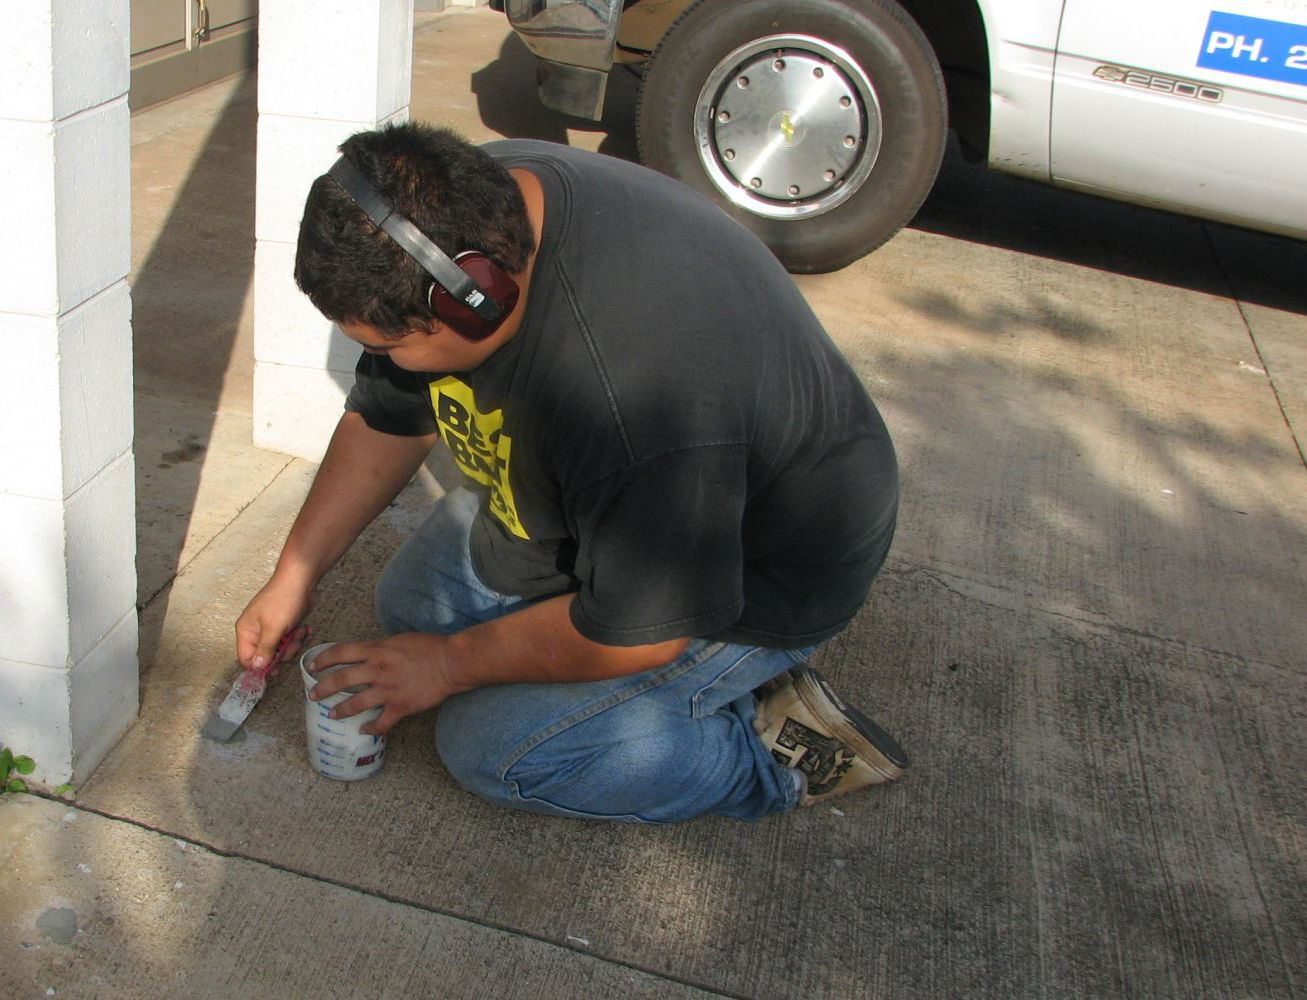 Pest and rodent control experts in Wailuku, HI